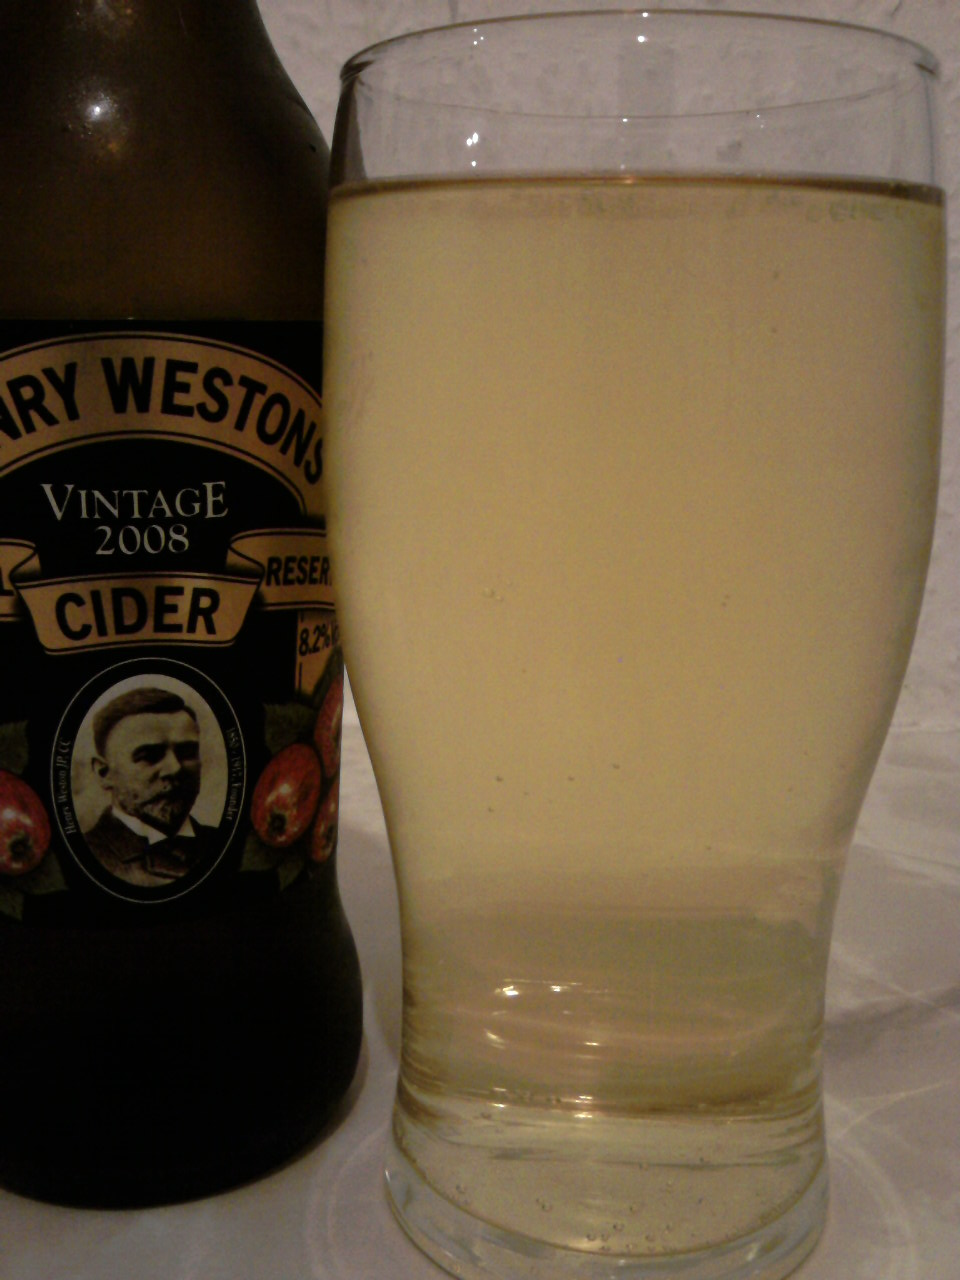 Henry Westons Vintage Special Reserve Cider poured into a glass